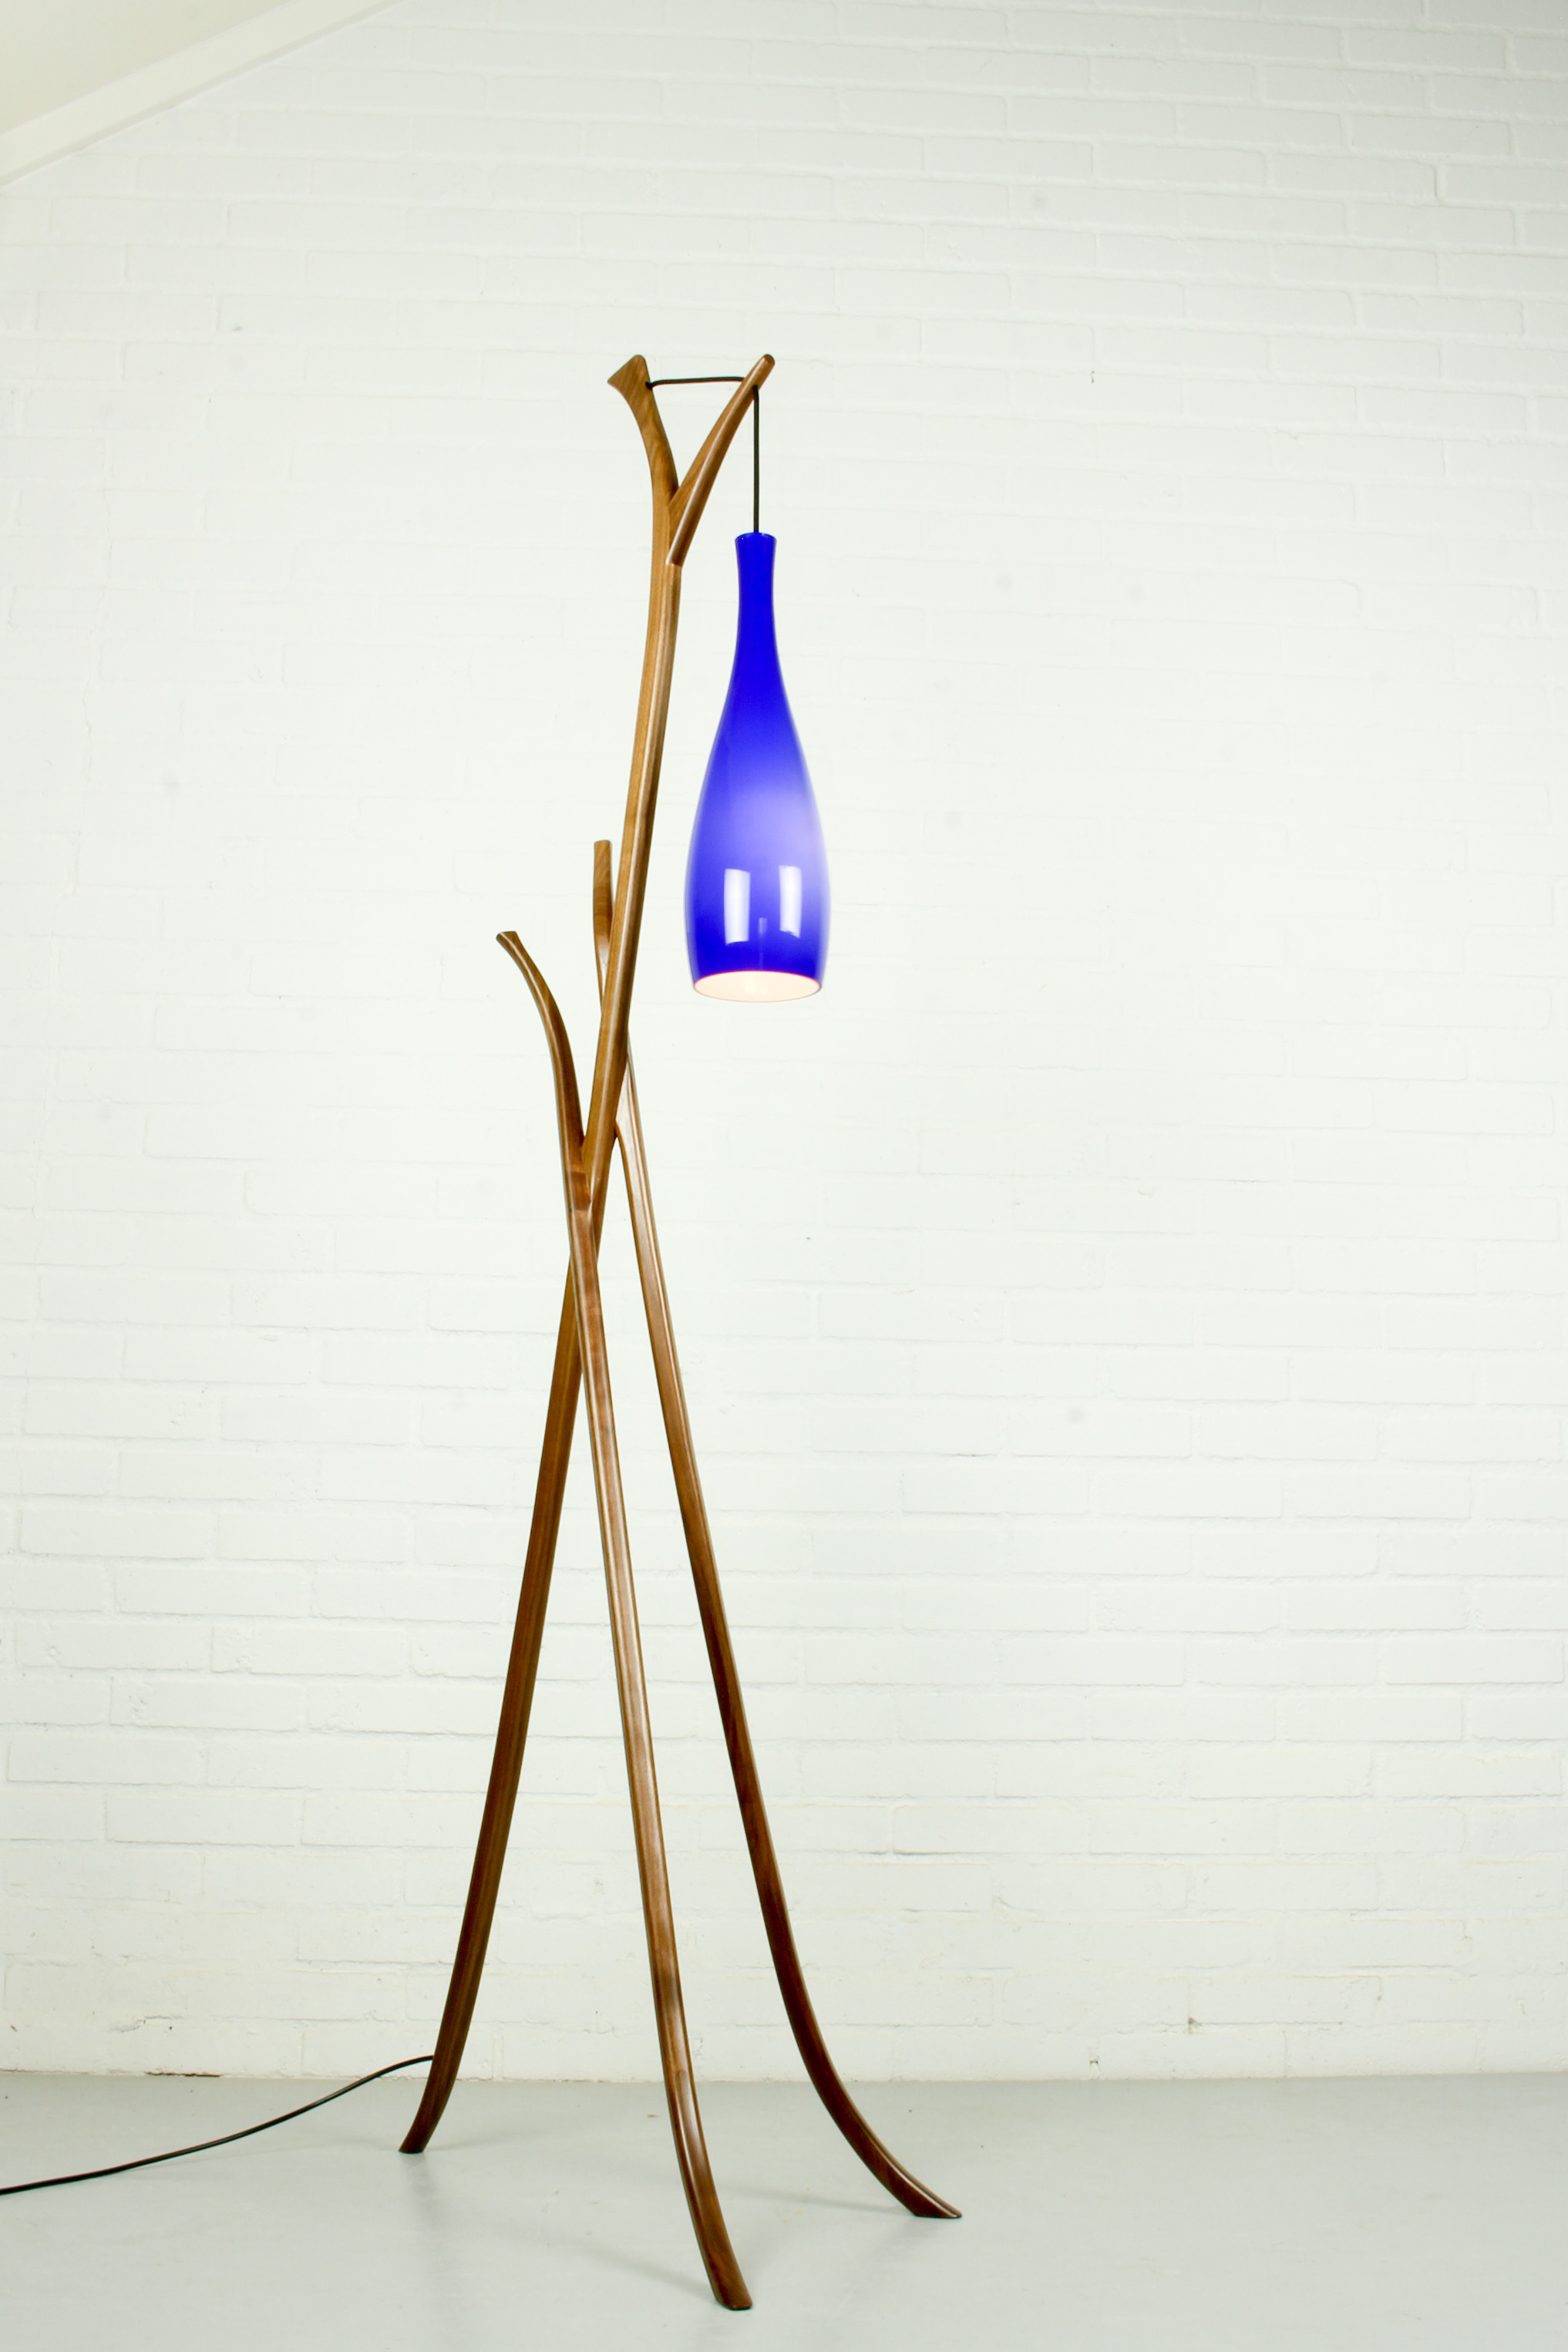 Image of: Mid Century Modern Floor Lamp With Blue Glass Lamp Shade Vinterior